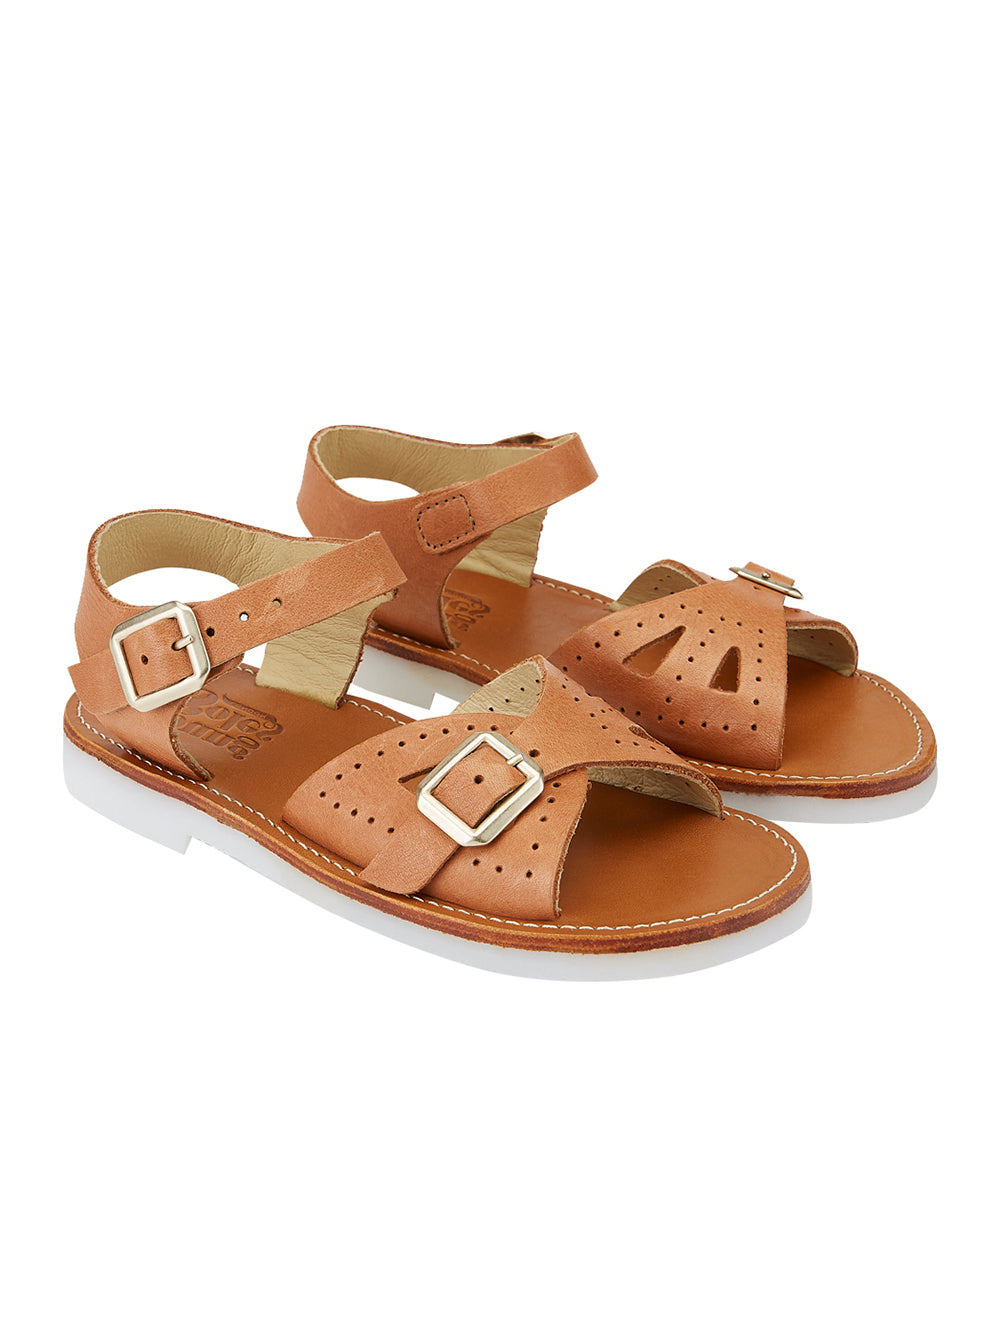 Pearl Clay Leather Sandals